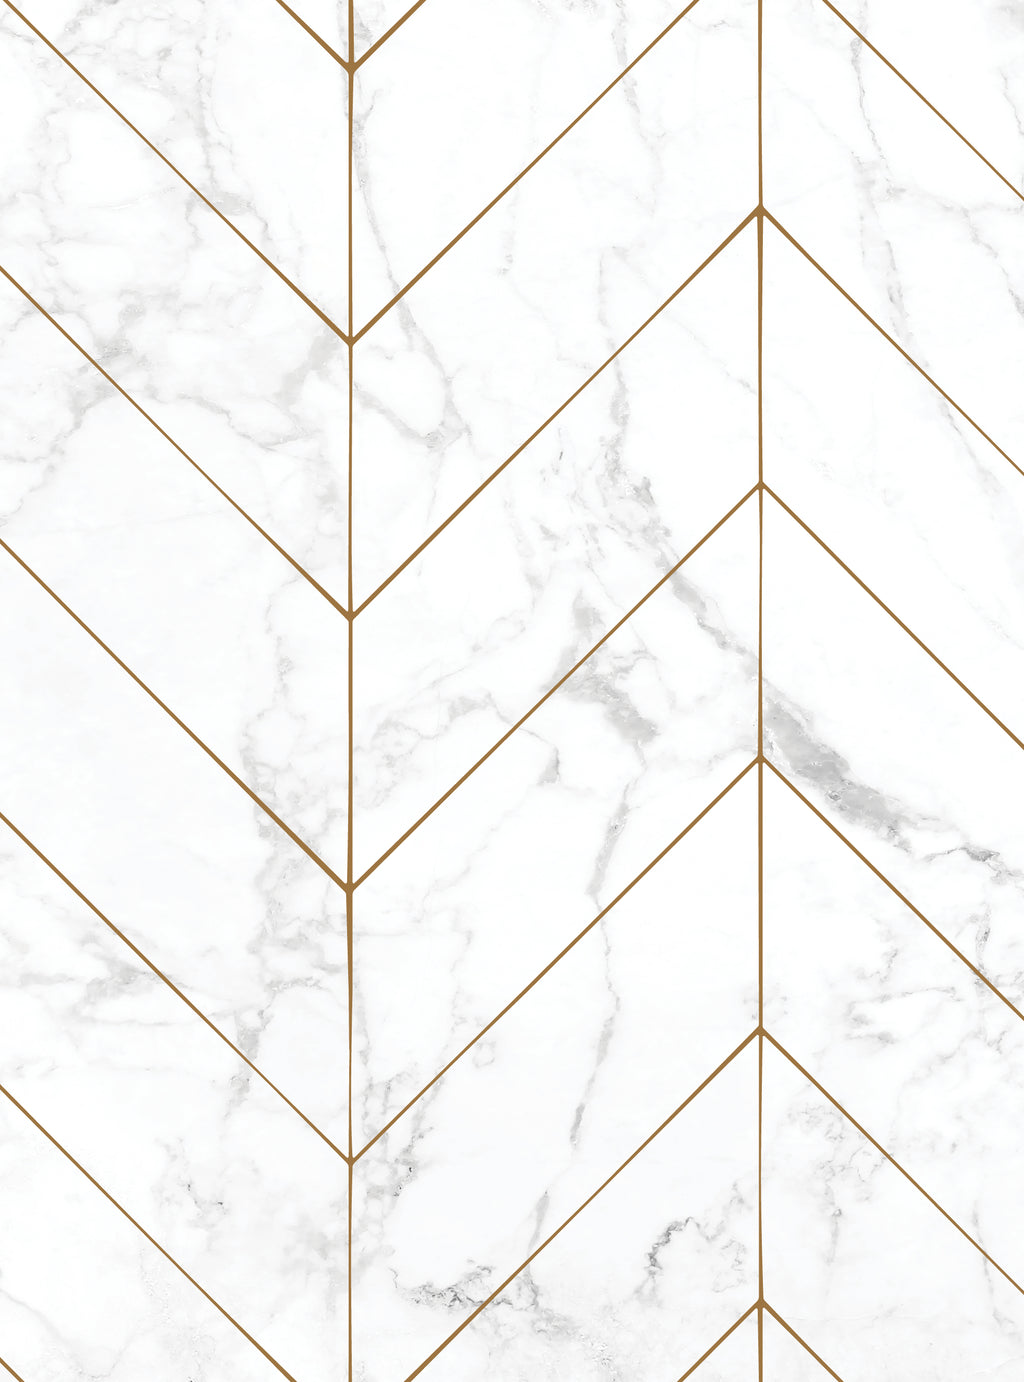 Chevron Marble Wallpaper - Peel and Stick